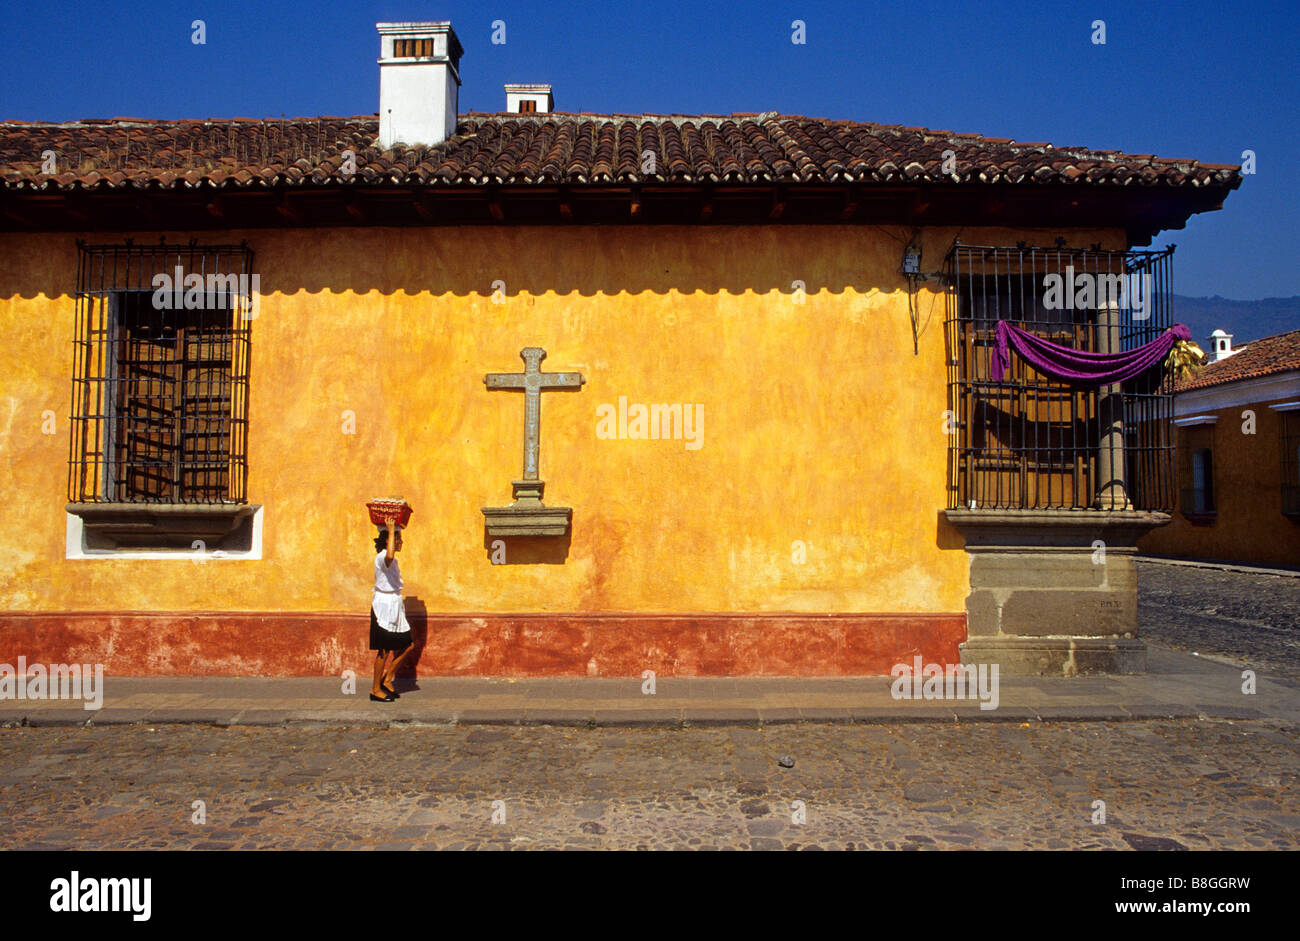 Spanish colonial architecture in the streets of Antigua Guatemala Sacatepéquez Region Guatemala - Stock Image